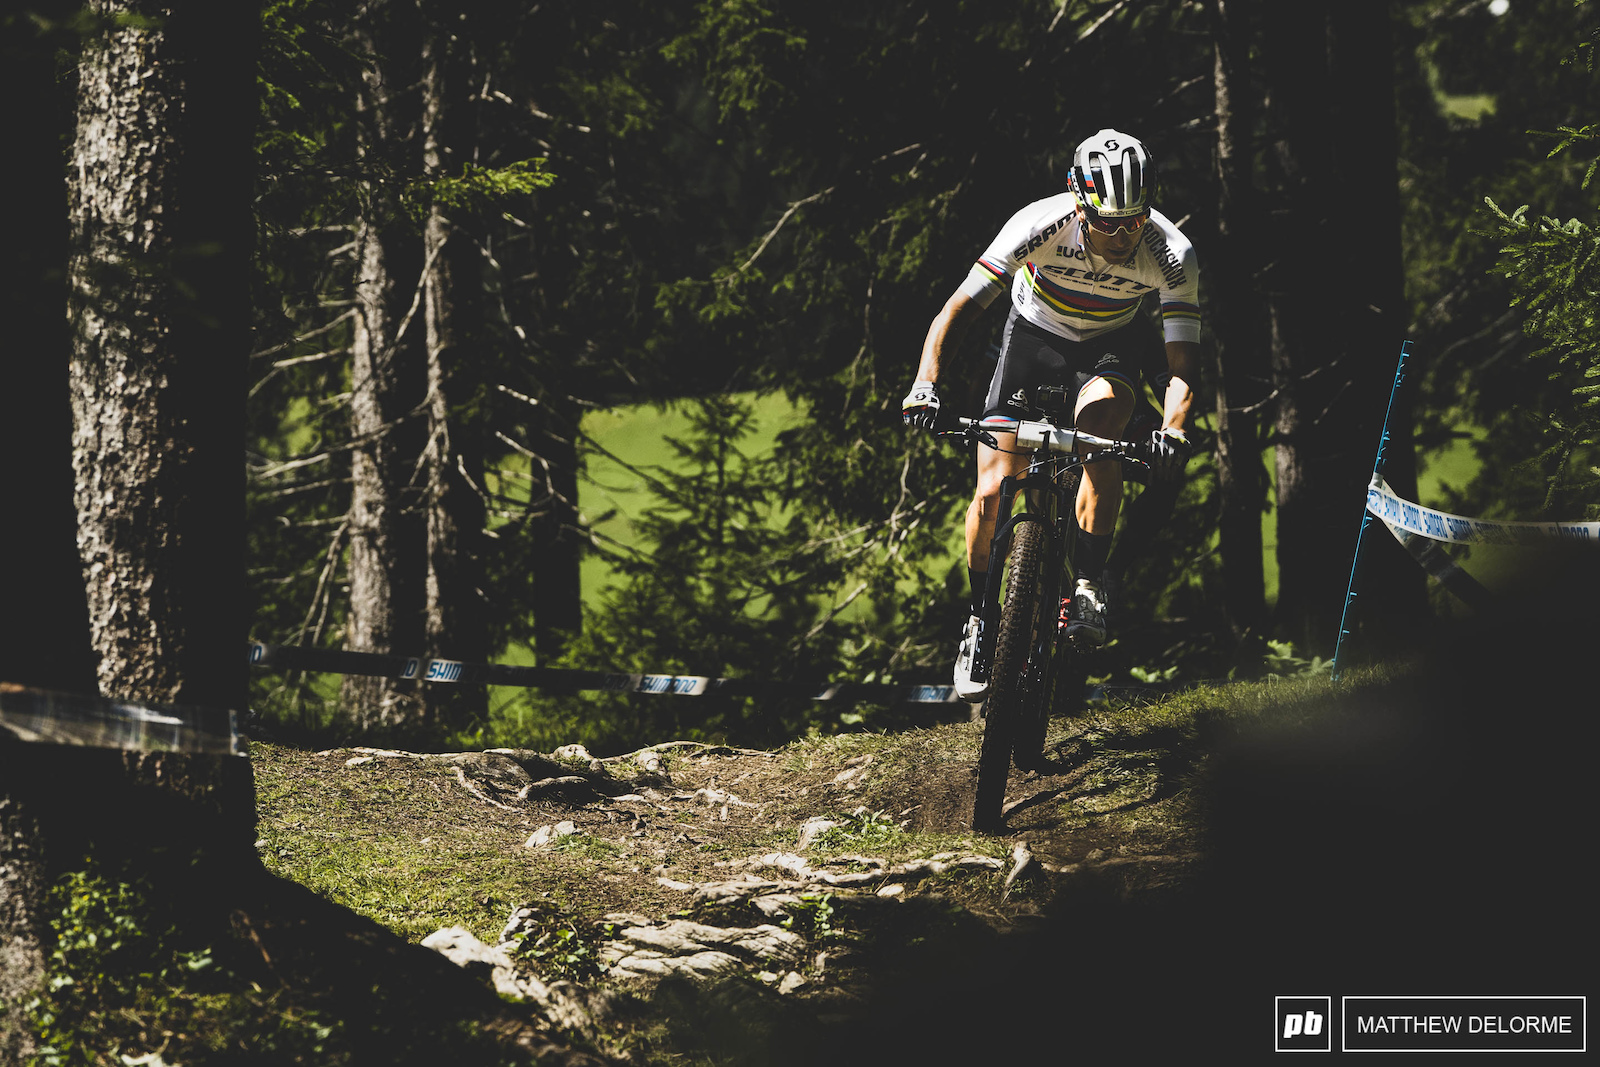 Nino took worlds here in Lenzerheide last year but he has had mixed results this year. will we see him take the win